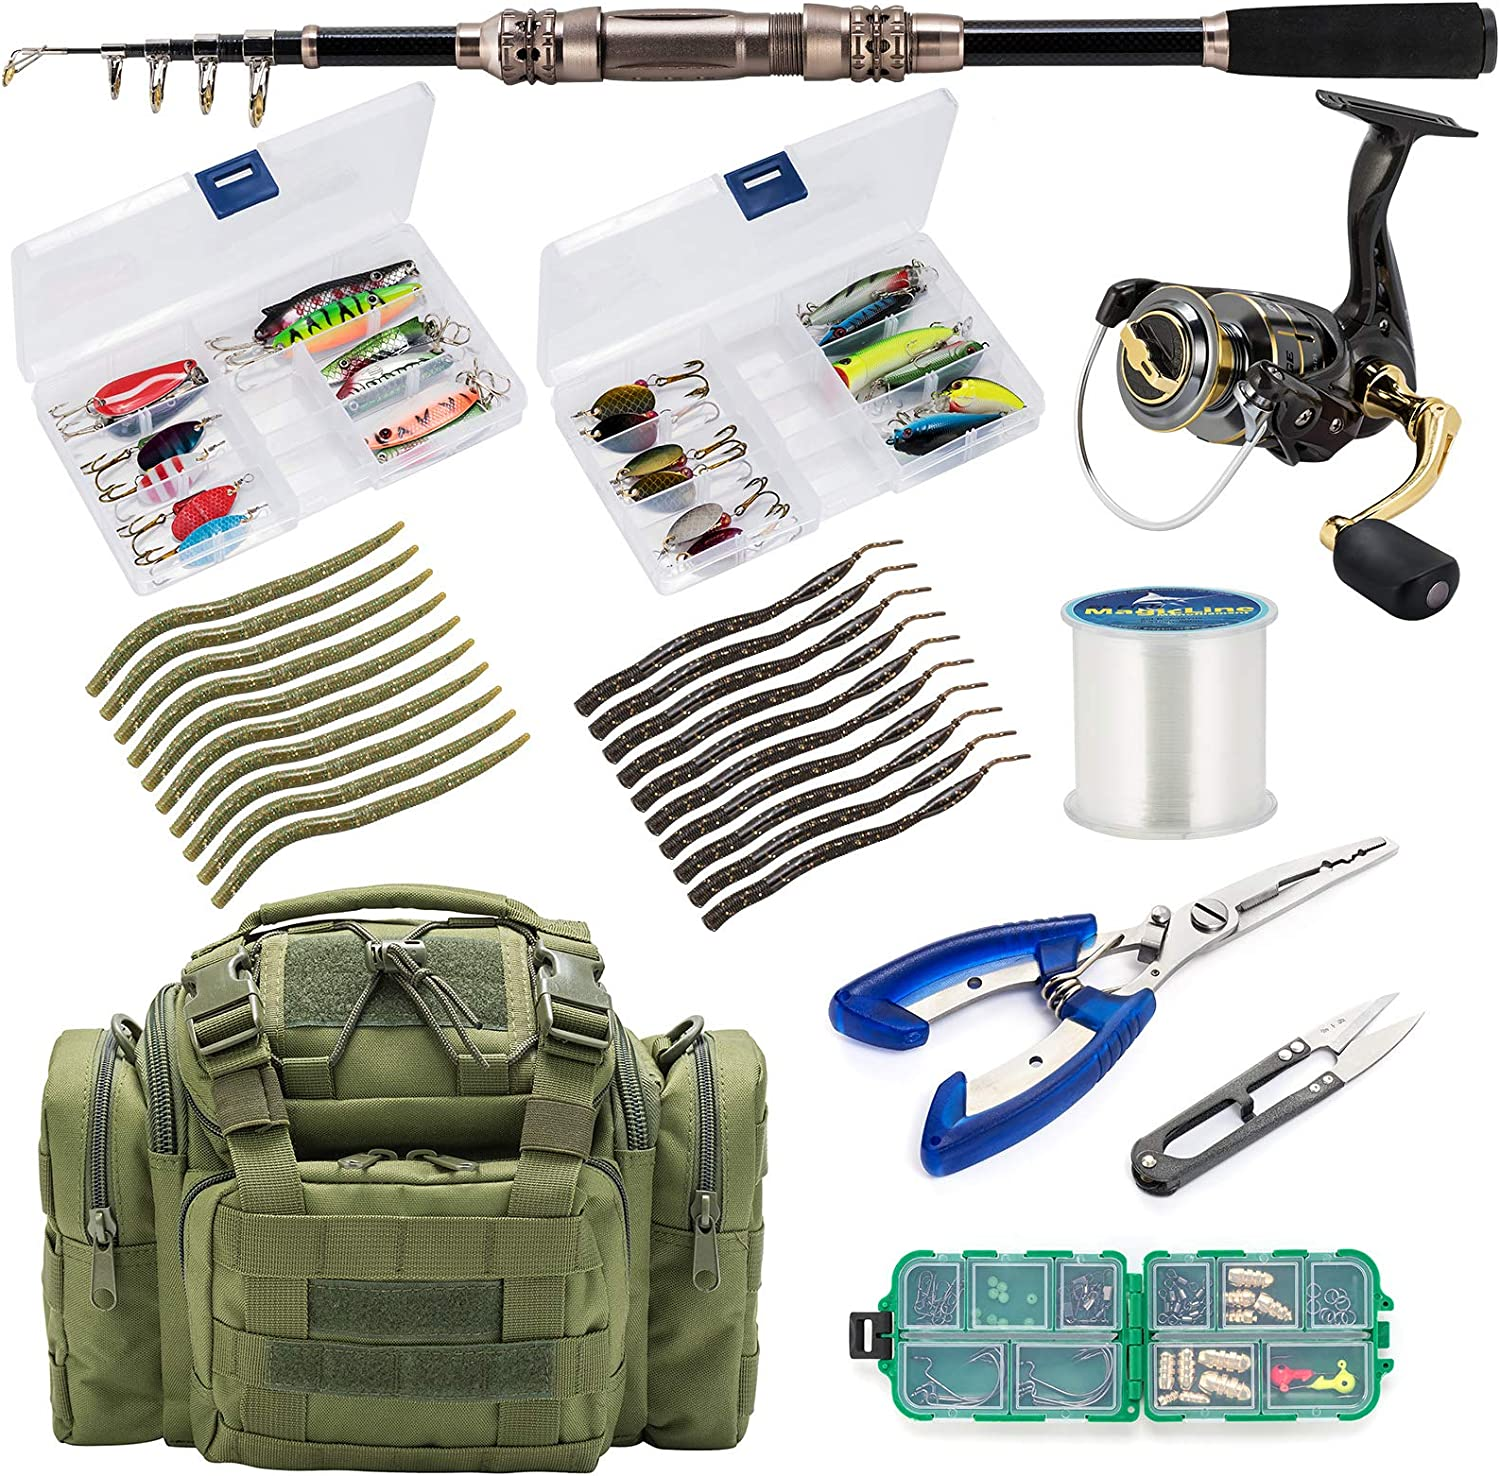 Dr.Fish Fishing Rod and Reel Combos 125pcs Full Kit Carbon Fiber Telescopic Spinning Rod 9+1BB Spinning Reel Tackle Bag Lines Lure Bait Accessories Gear Organizer 2 Size Saltwater Freshwater